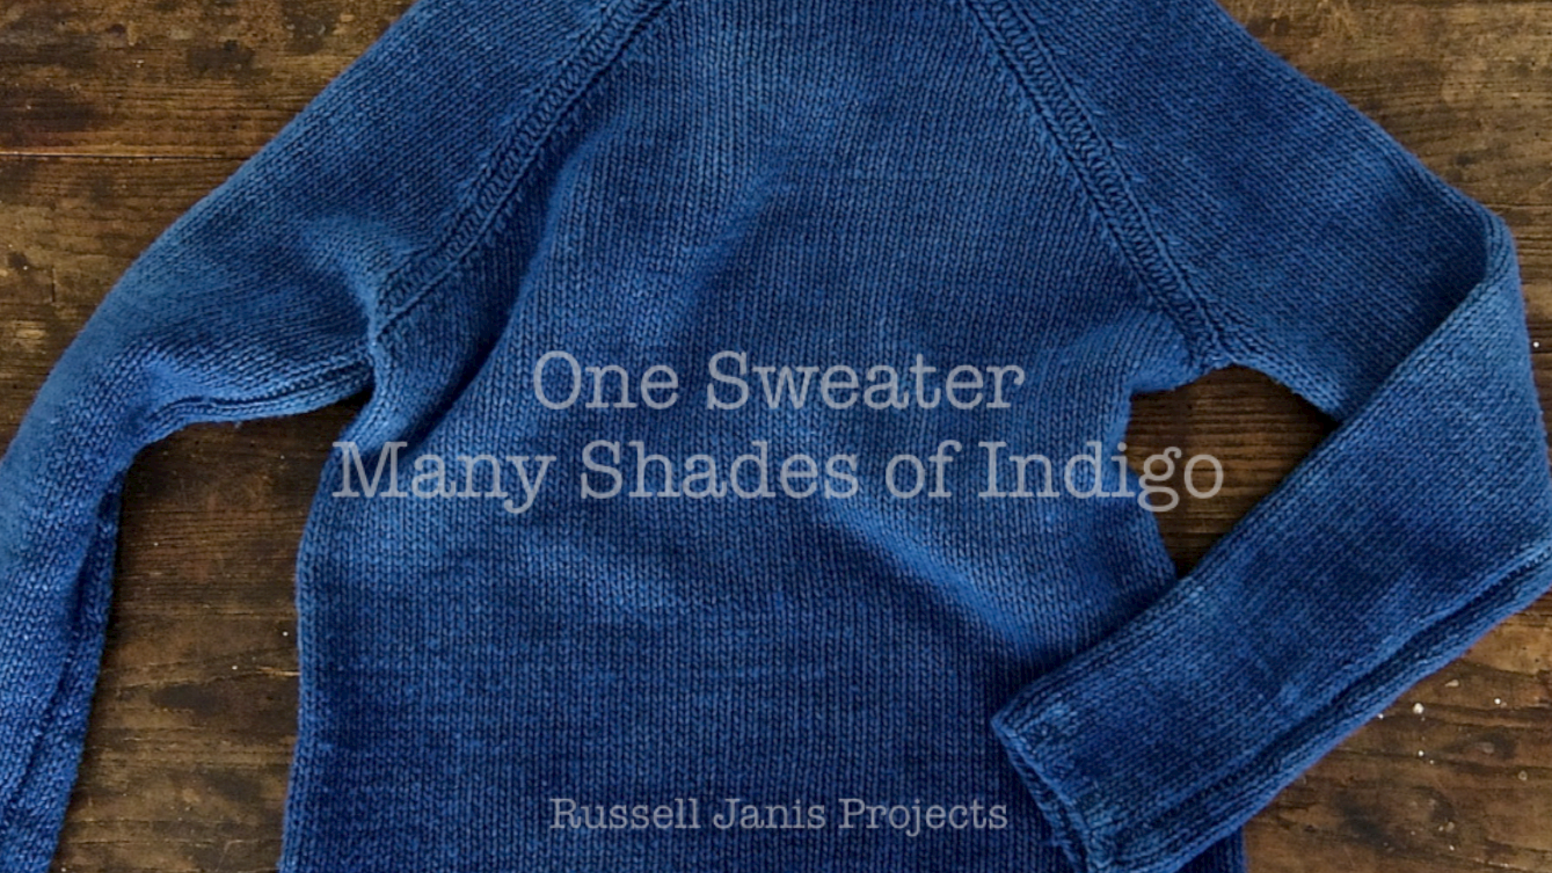 A quest to make one thoughtful beautiful sweater brought a global production home distilling years of design and the alchemy of indigo. Details at russelljanis.com at the link below!